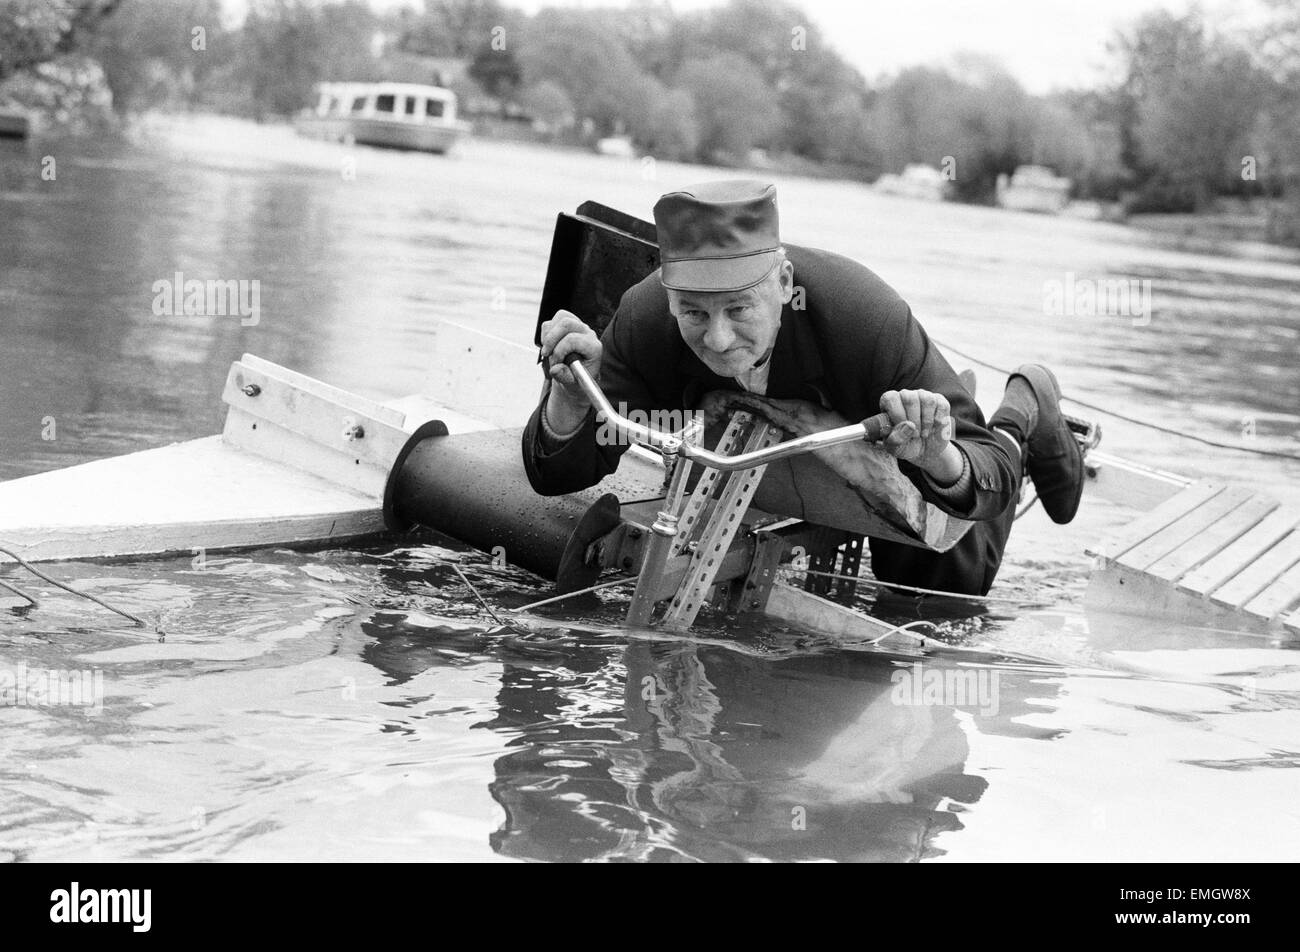 Pensioner Patrick Thomas pictured on his lying down bicycle equipped with floats as he makes his first voyage on - Stock Image